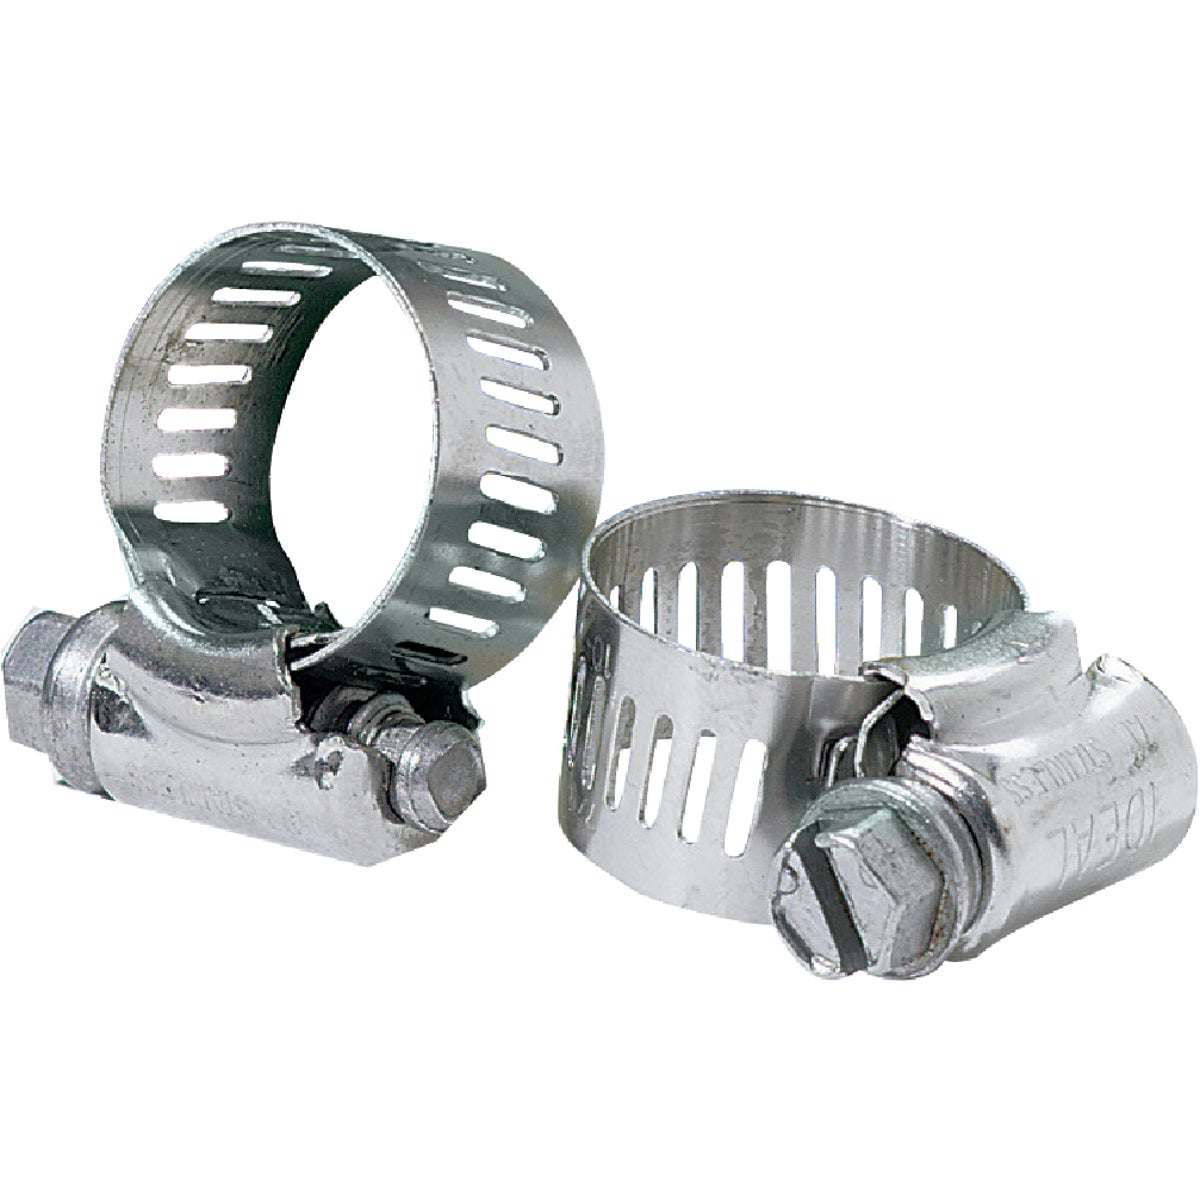 "1/2"" TO 1-1/16"" CLAMP - 6710153 by Ideal Corp"